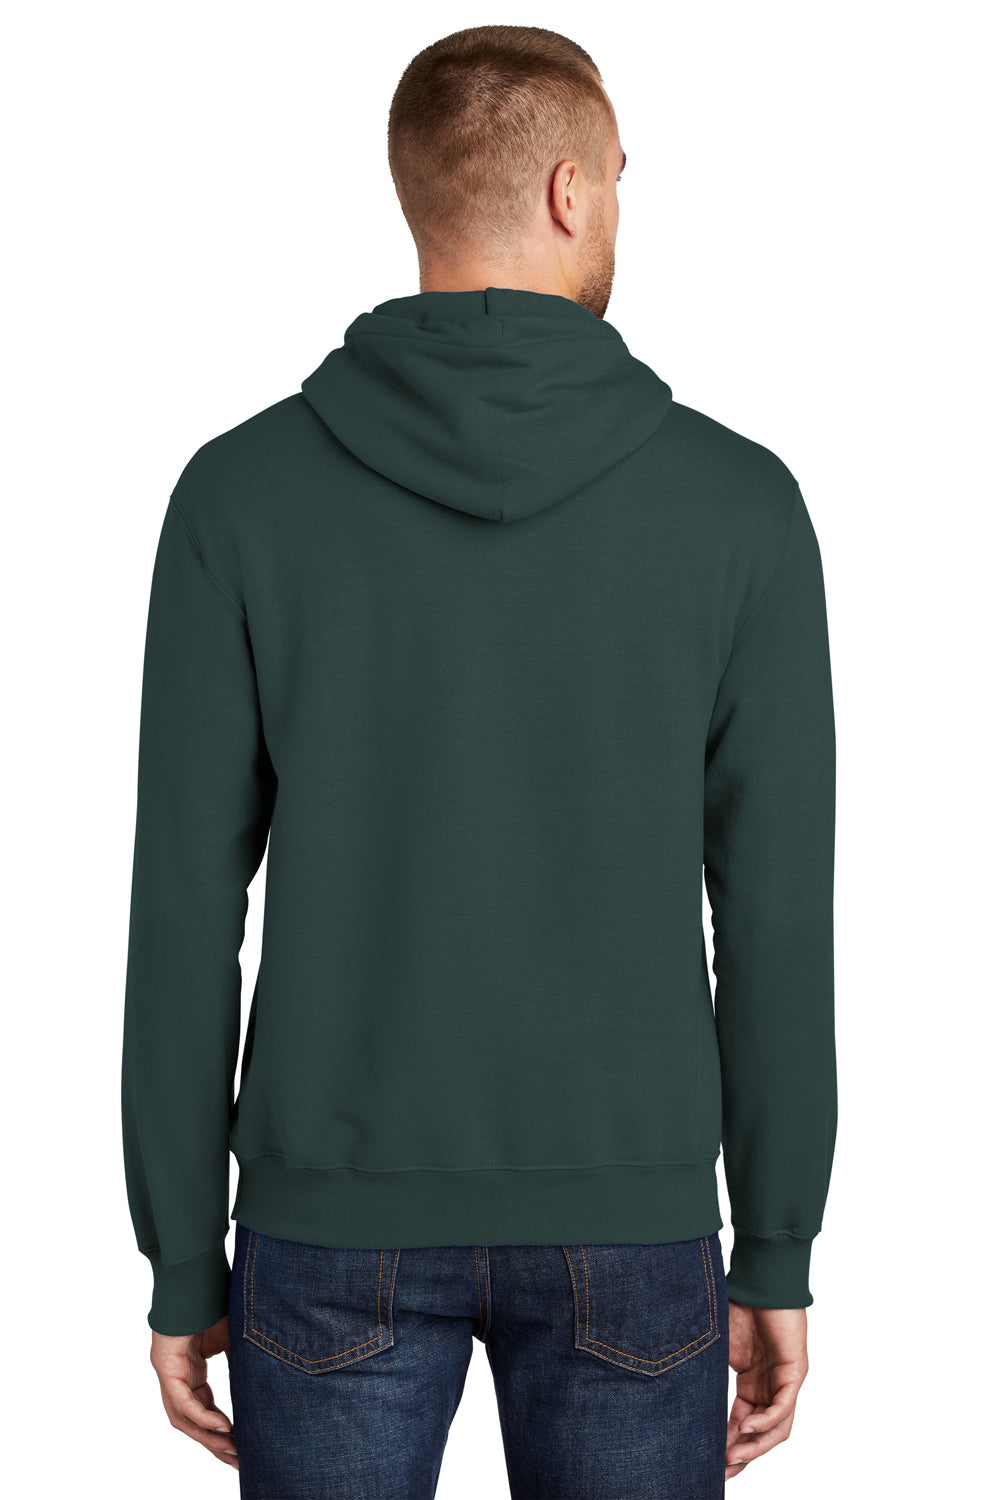 Port & Company PC90H Mens Essential Fleece Hooded Sweatshirt Hoodie Dark Green Side